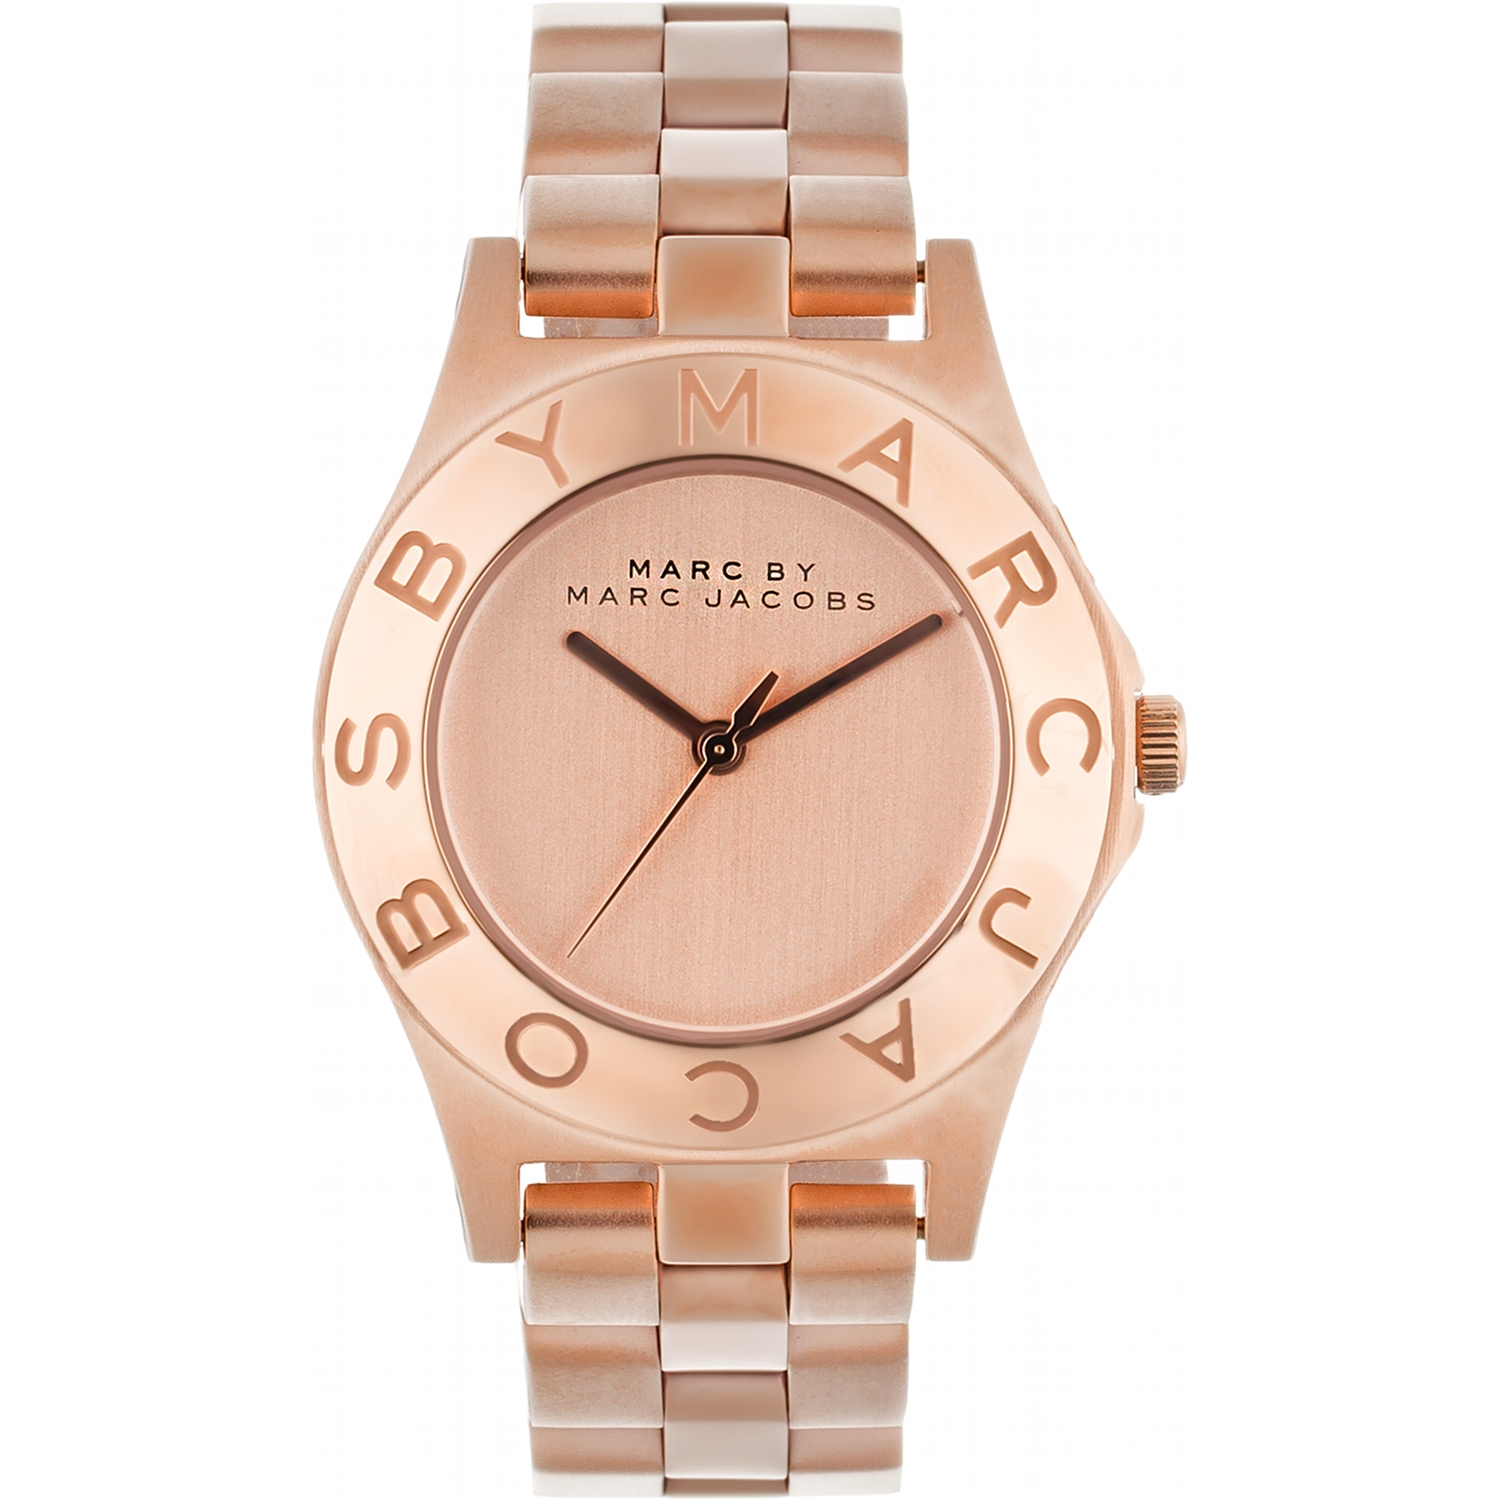 montre marc jacobs solde